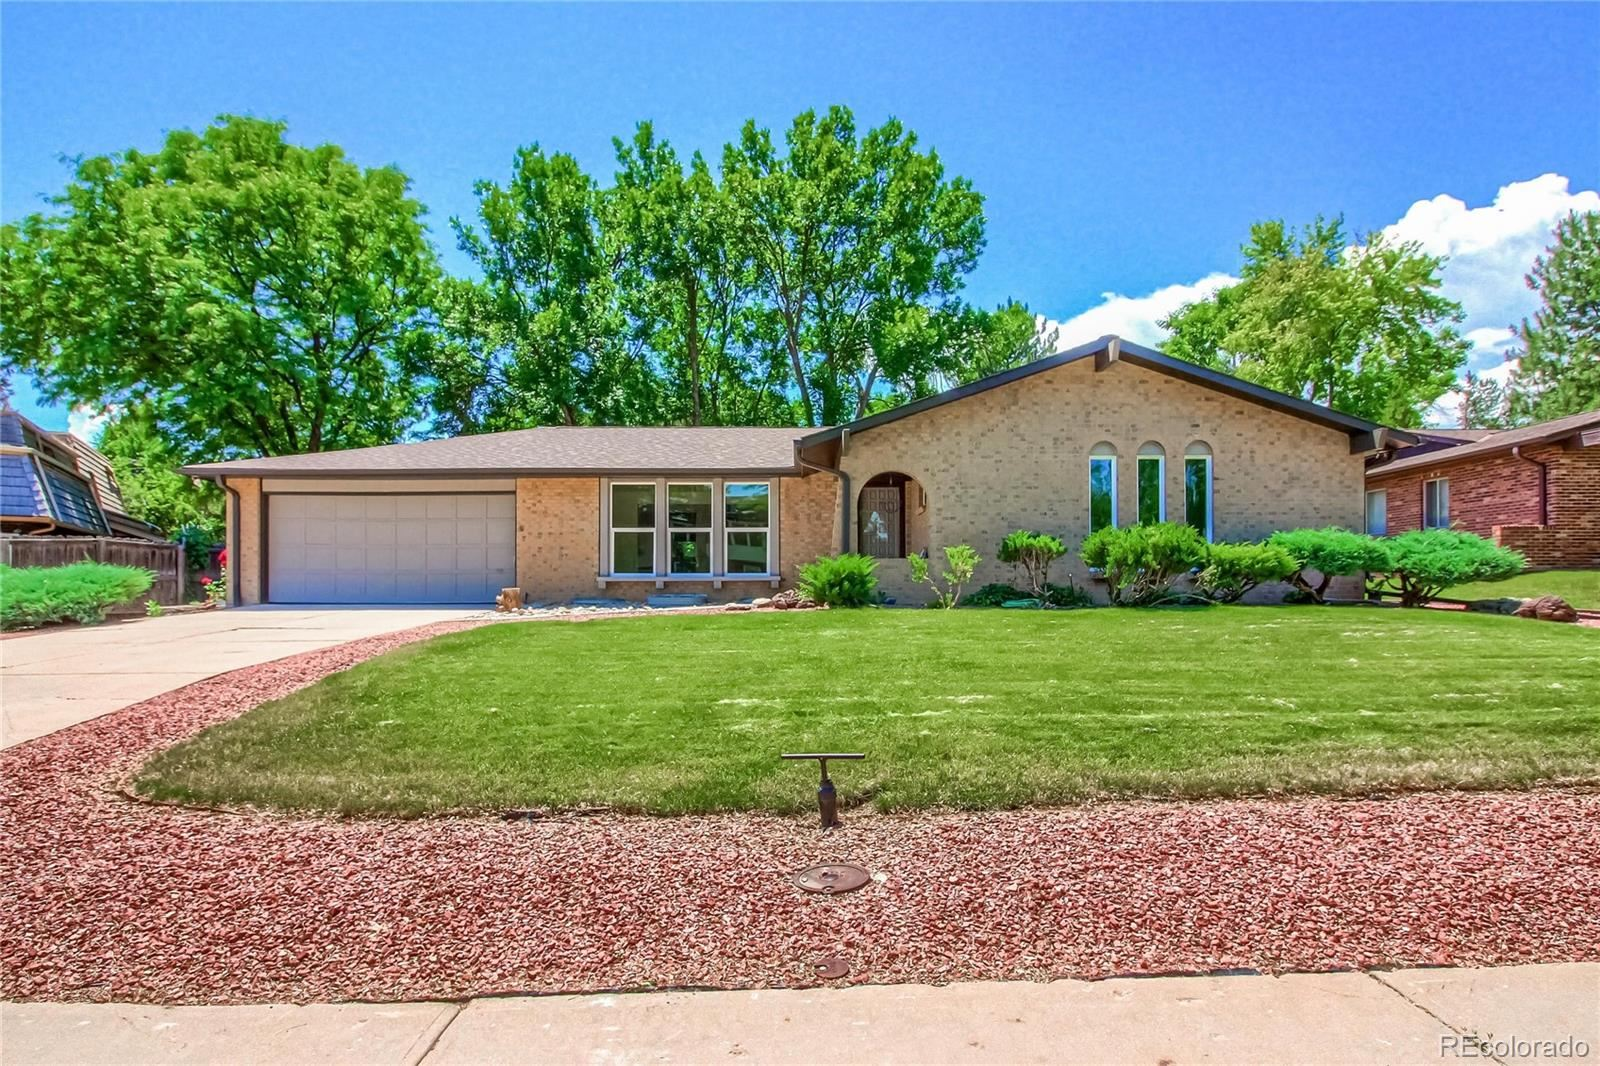 6636 W Glasgow Avenue, Littleton, CO 80128 - #: 2113060